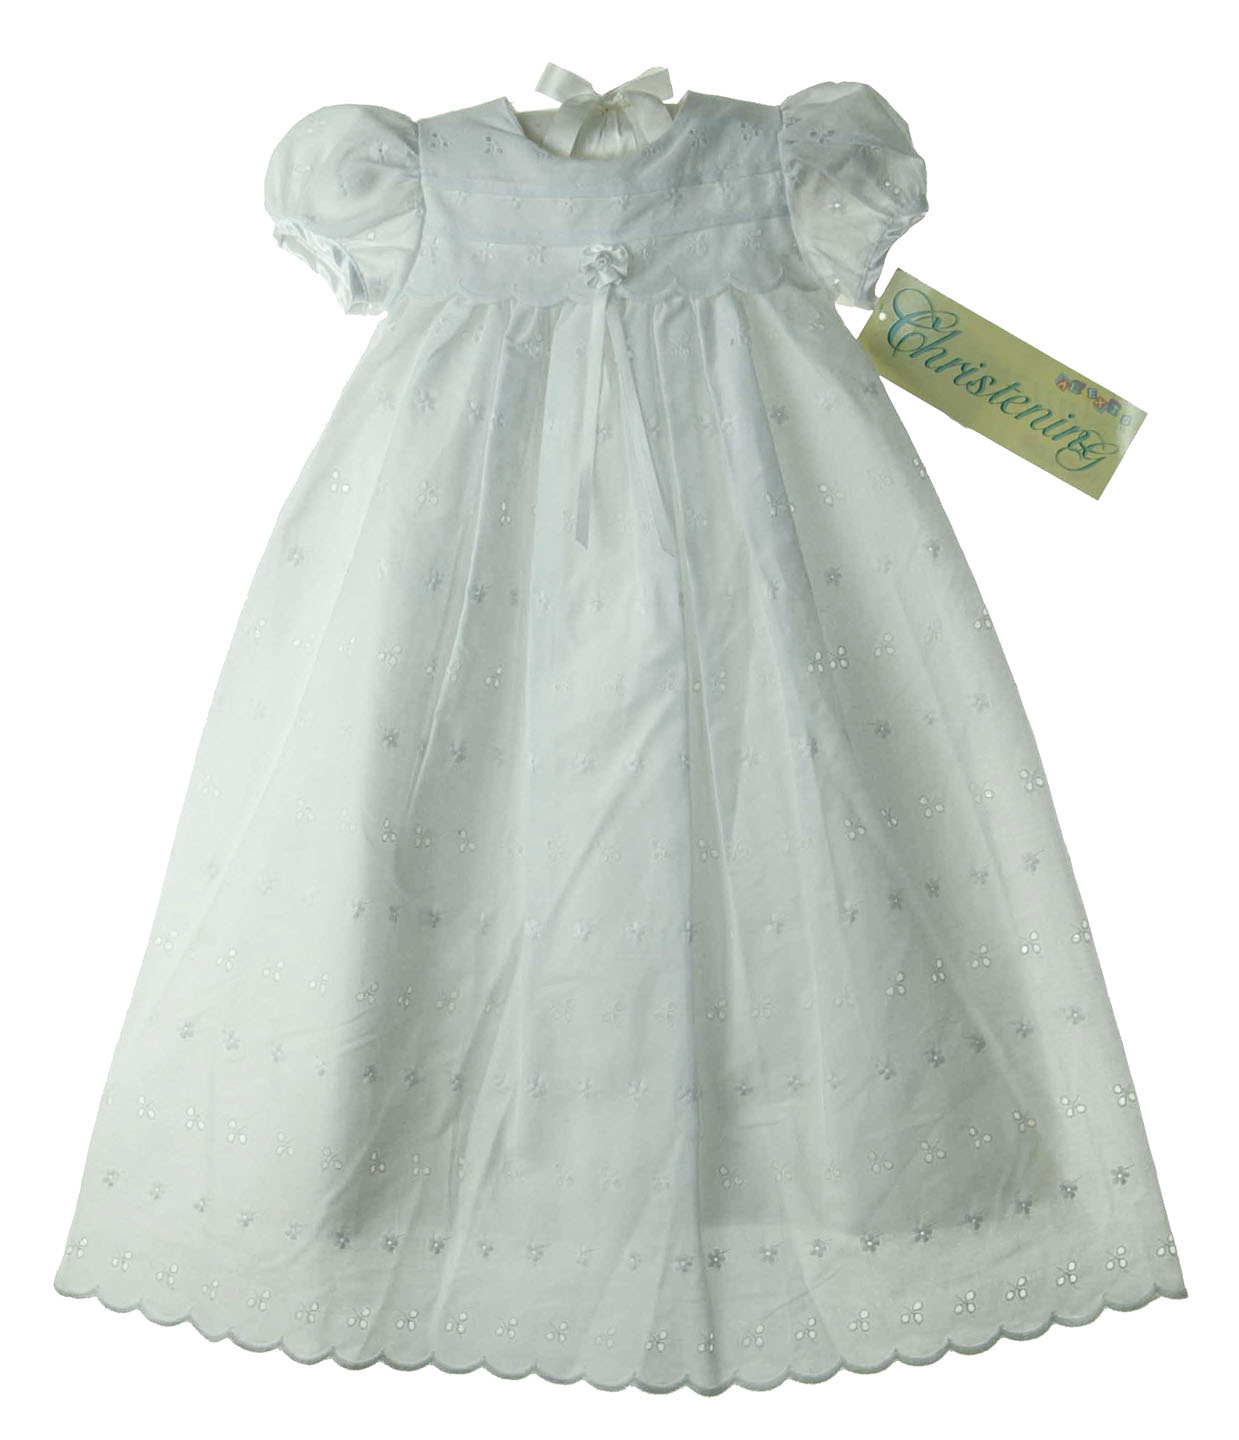 Alexis white eyelet christening gown for baby girls,baby girls white ...